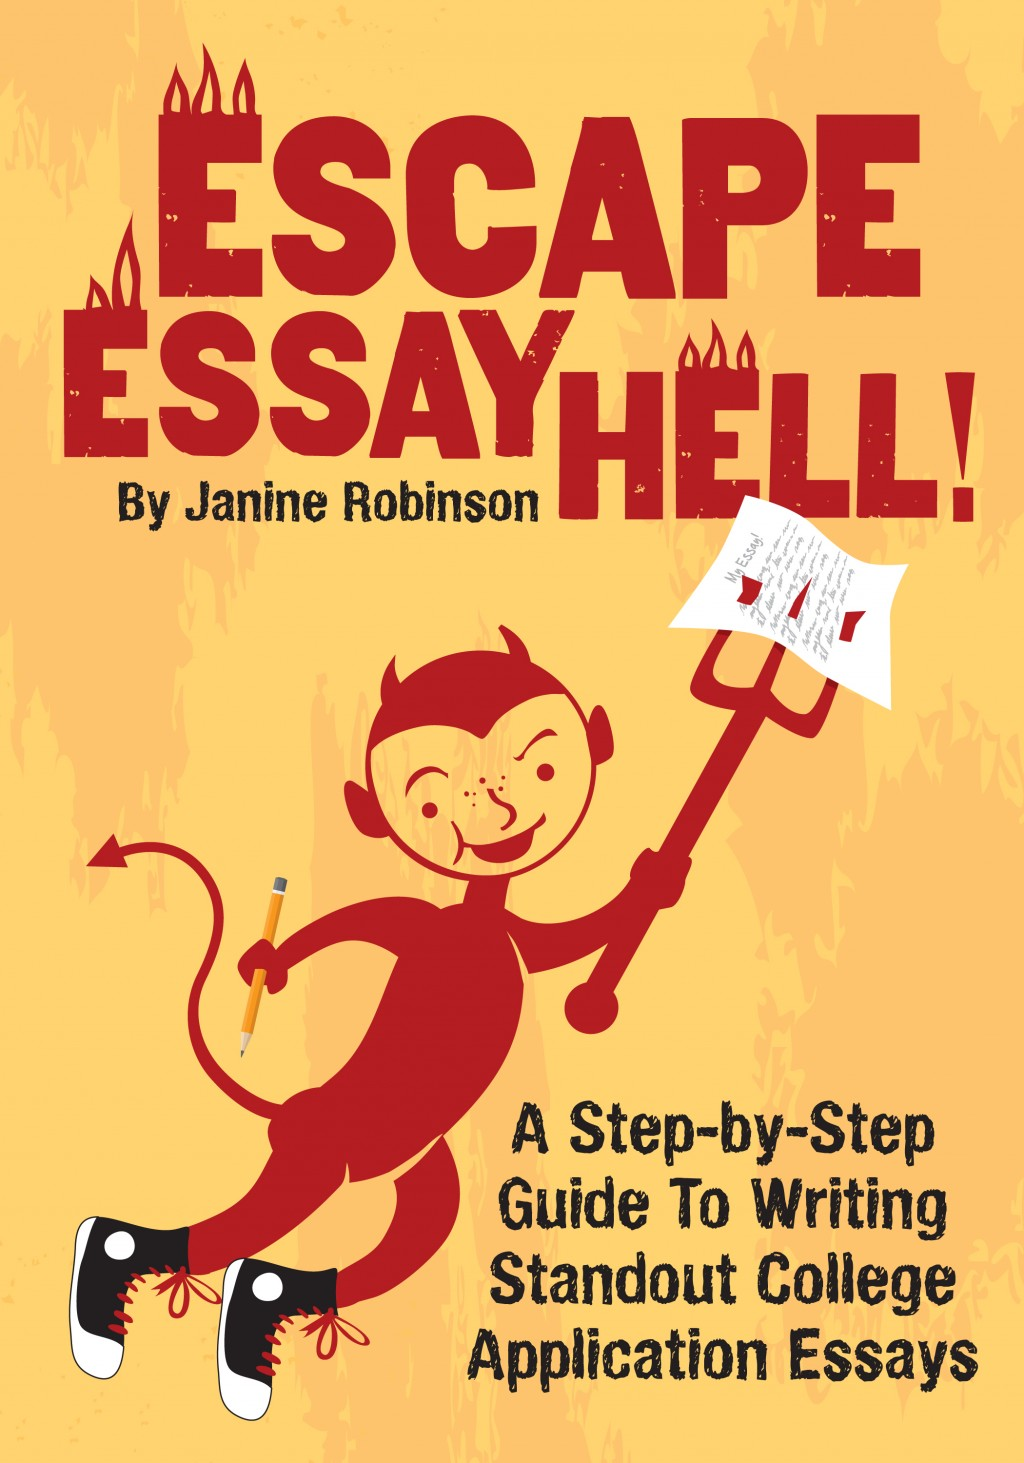 Complete Information On Types Of Essays And Tips To Find The Best Essay Writing Service